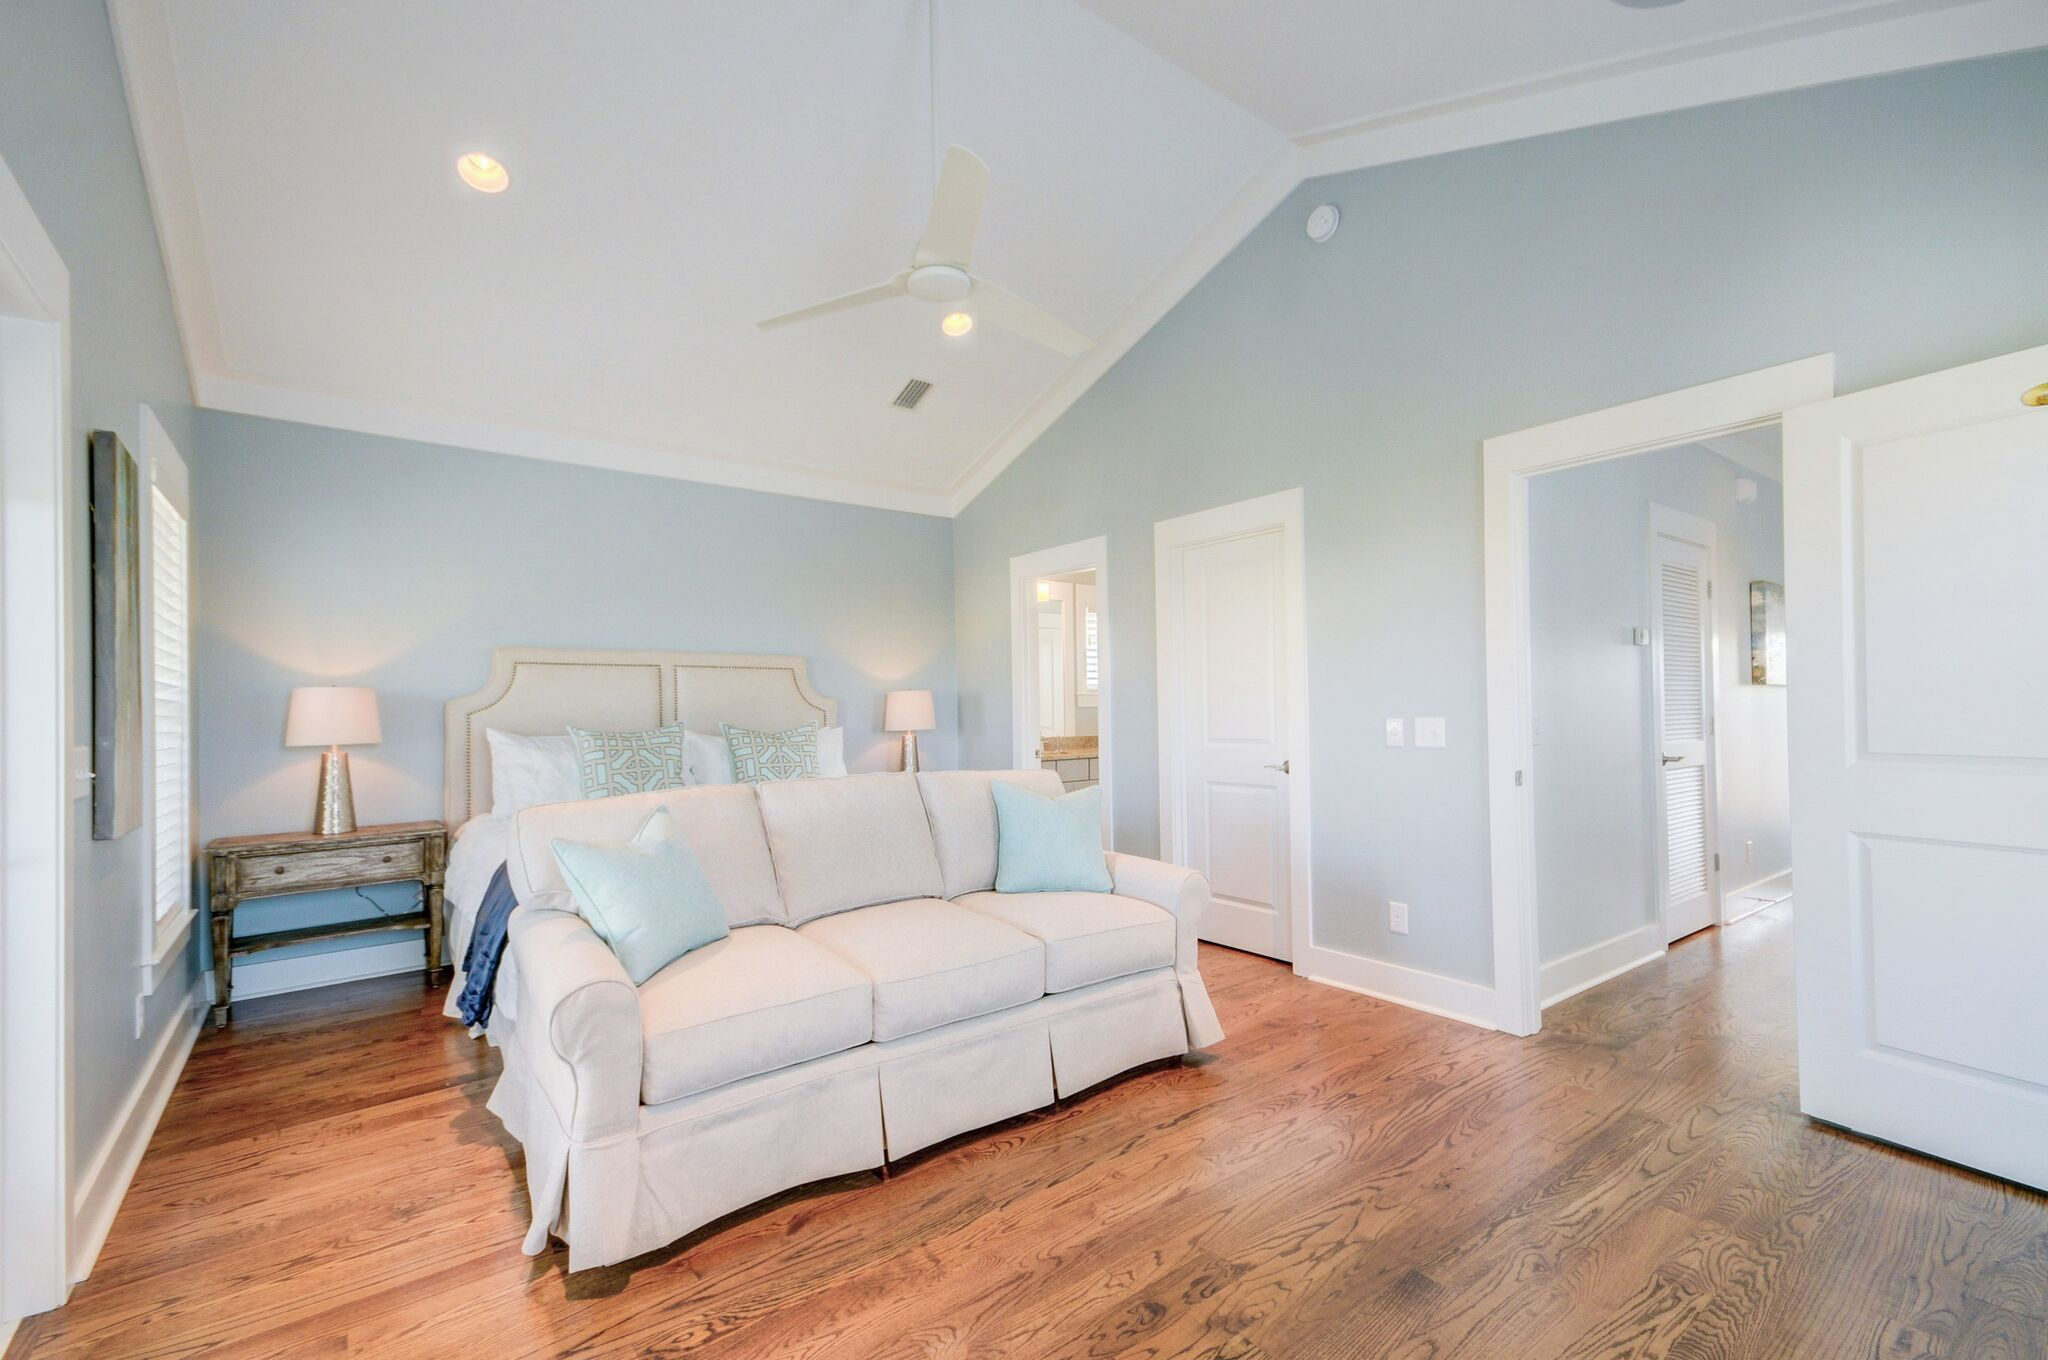 3rd Floor King Master Suite with Private Balcony and Ensuite Bathroom